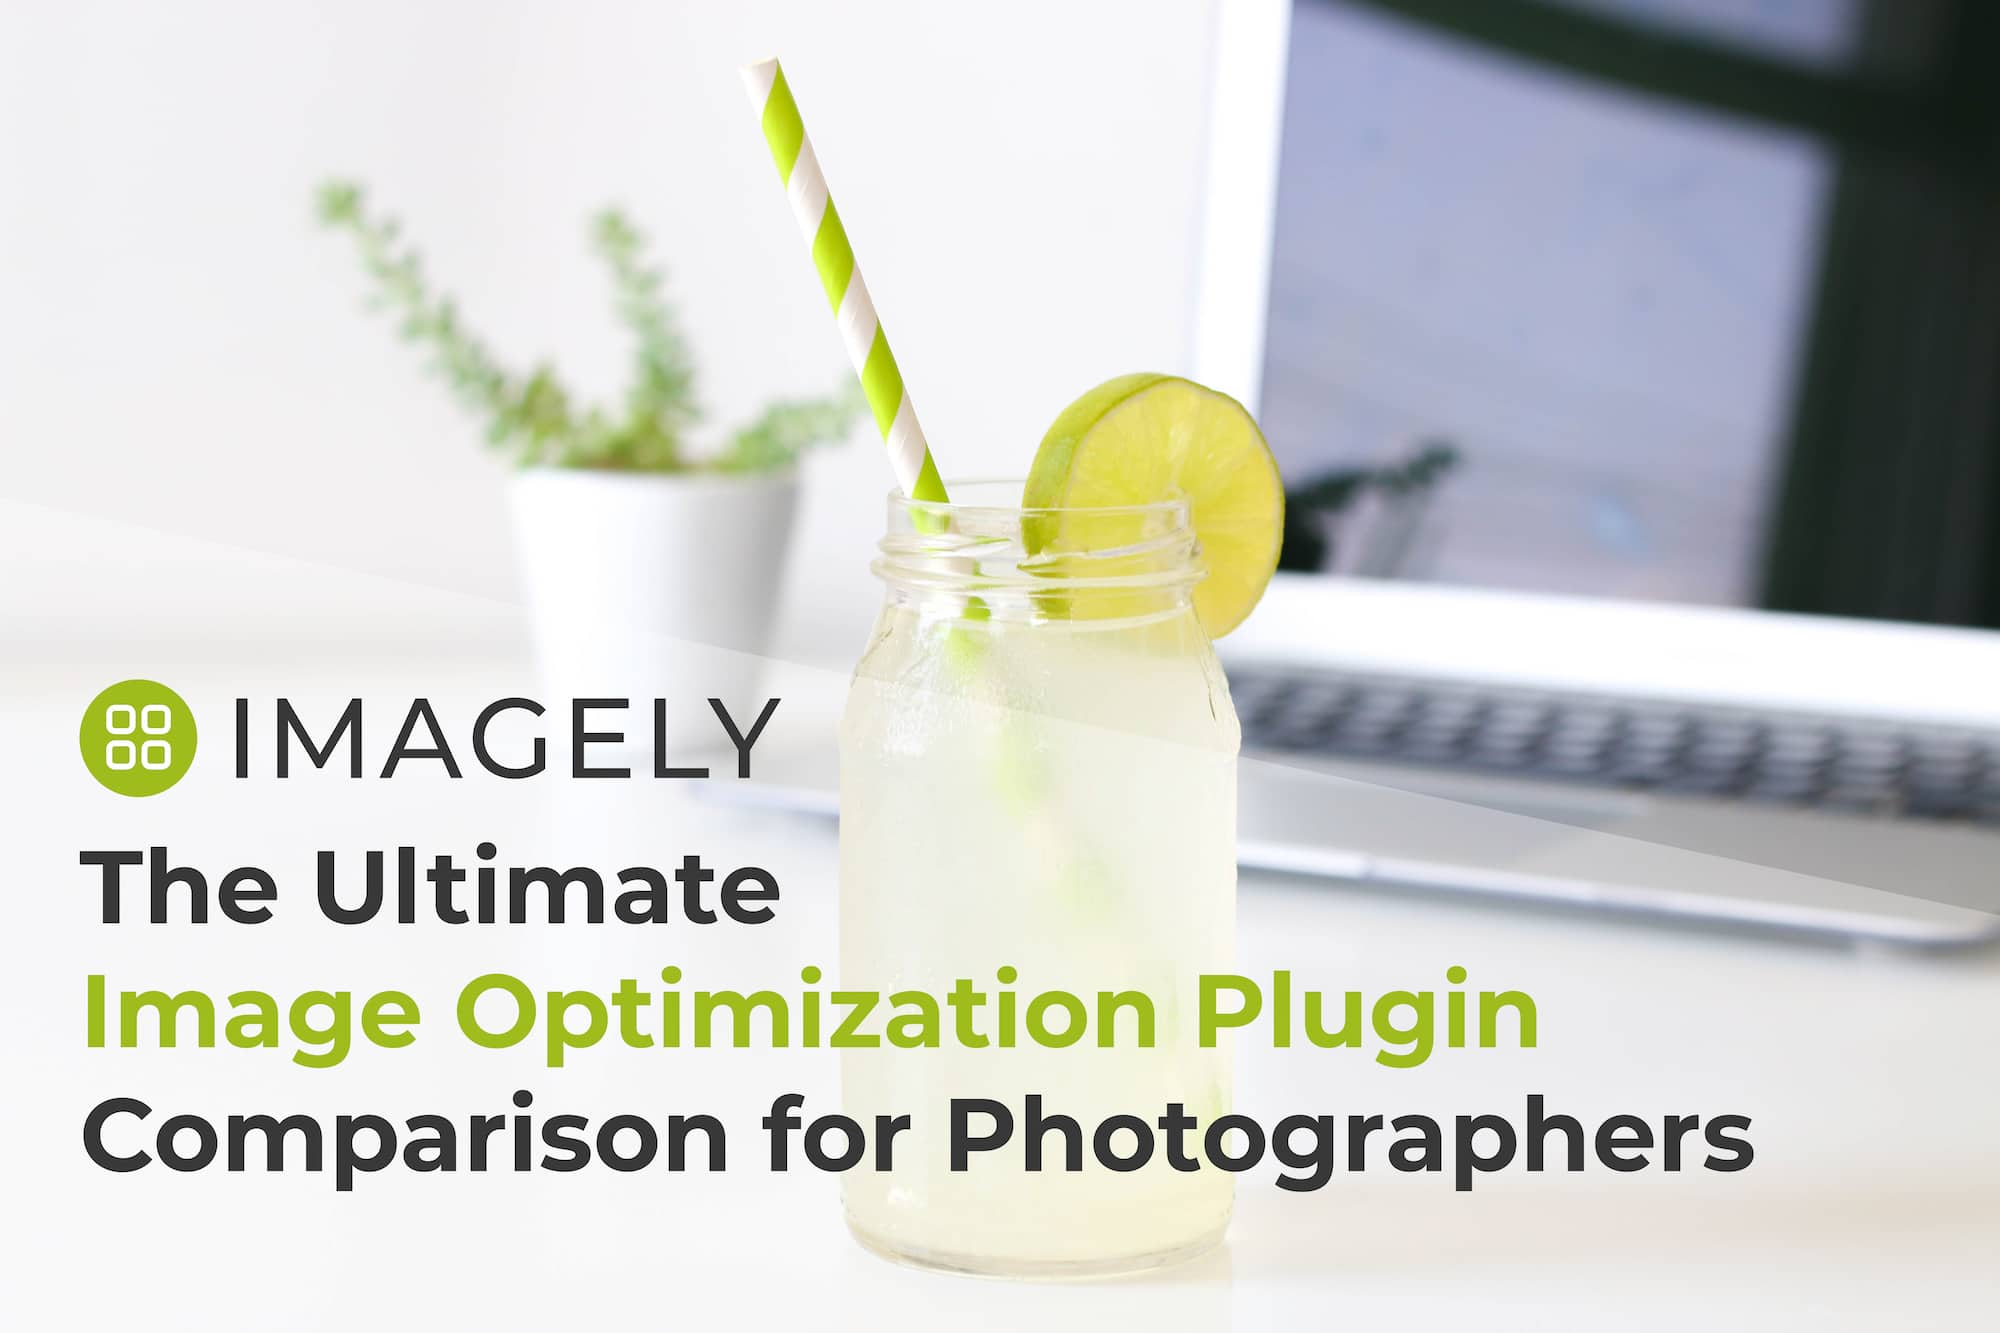 There are a variety of ways to optimize your images for the web. Two of the most popular and effective methods are compressing images and using lazy loading. Both of these tasks can be achieved using a plugin such as WP Smush, Imagify or ShortPixel: